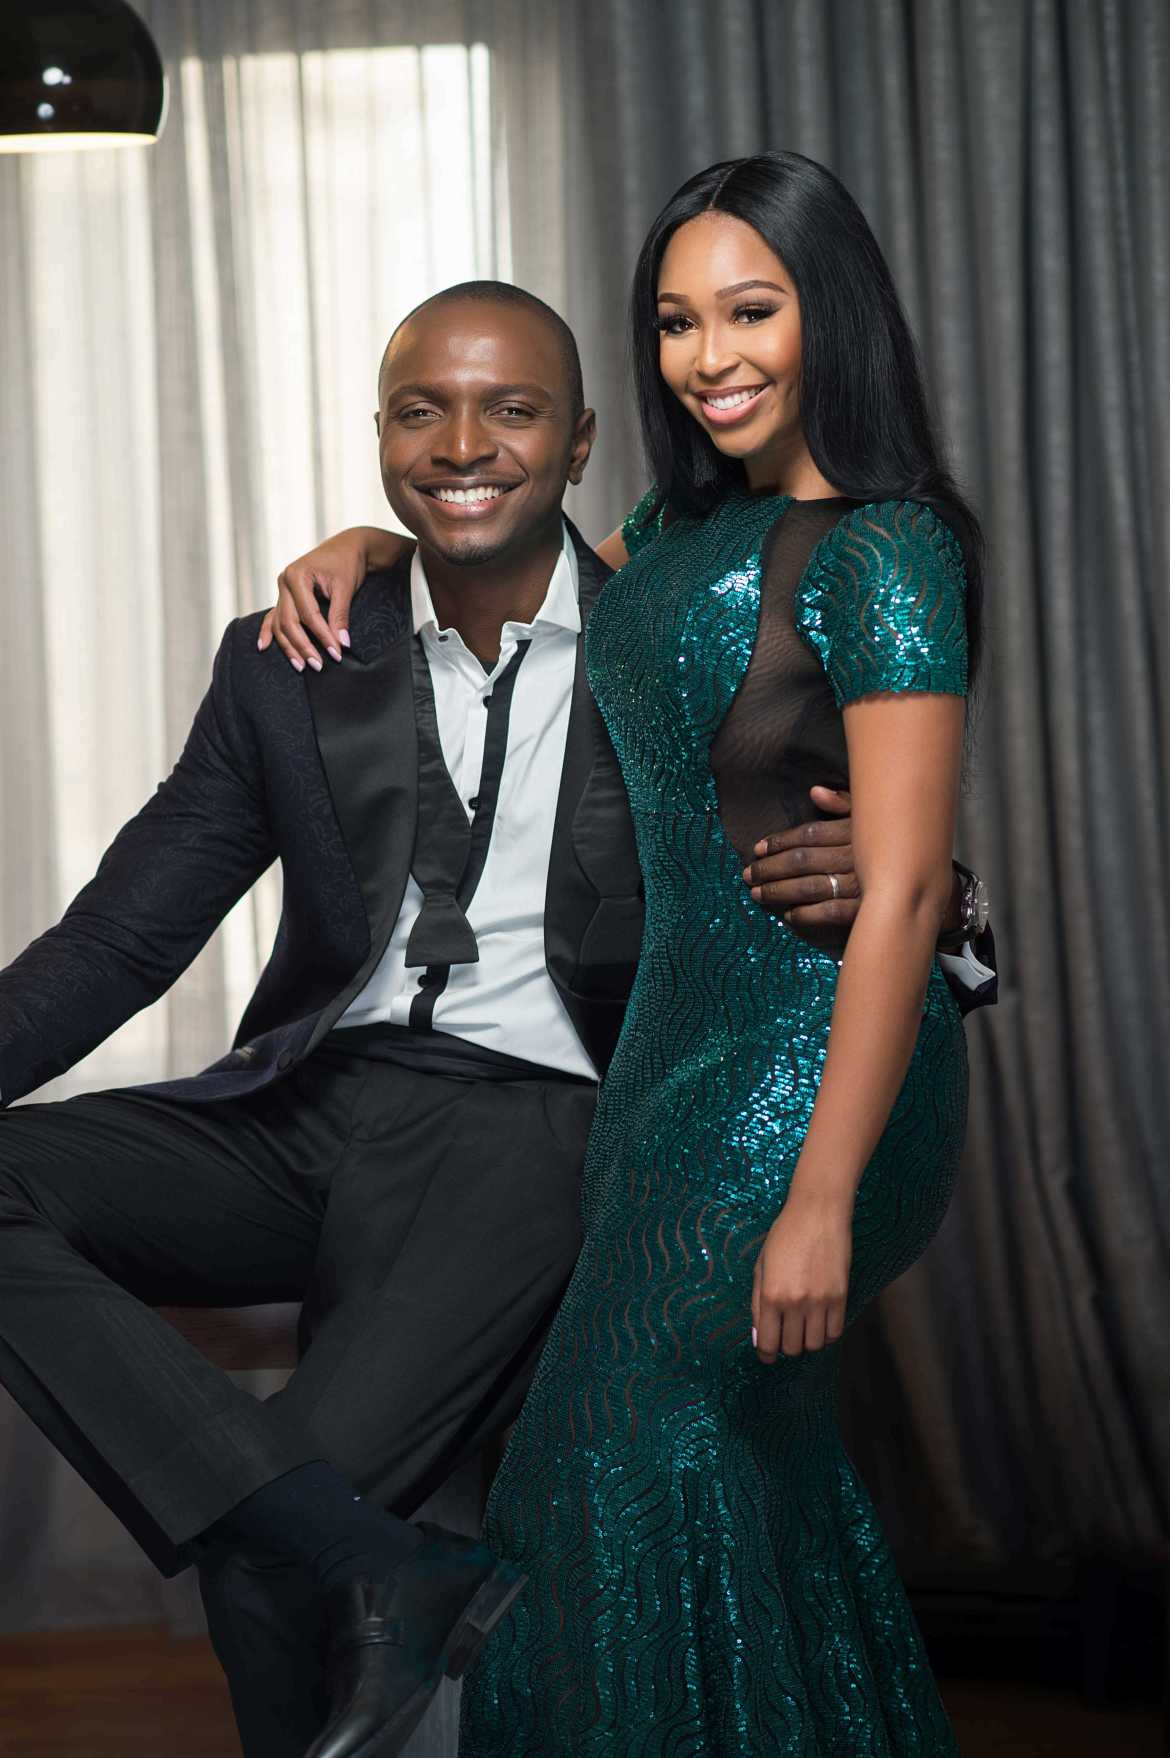 Minnie Dlamini Jones and Ik Osakioduwa